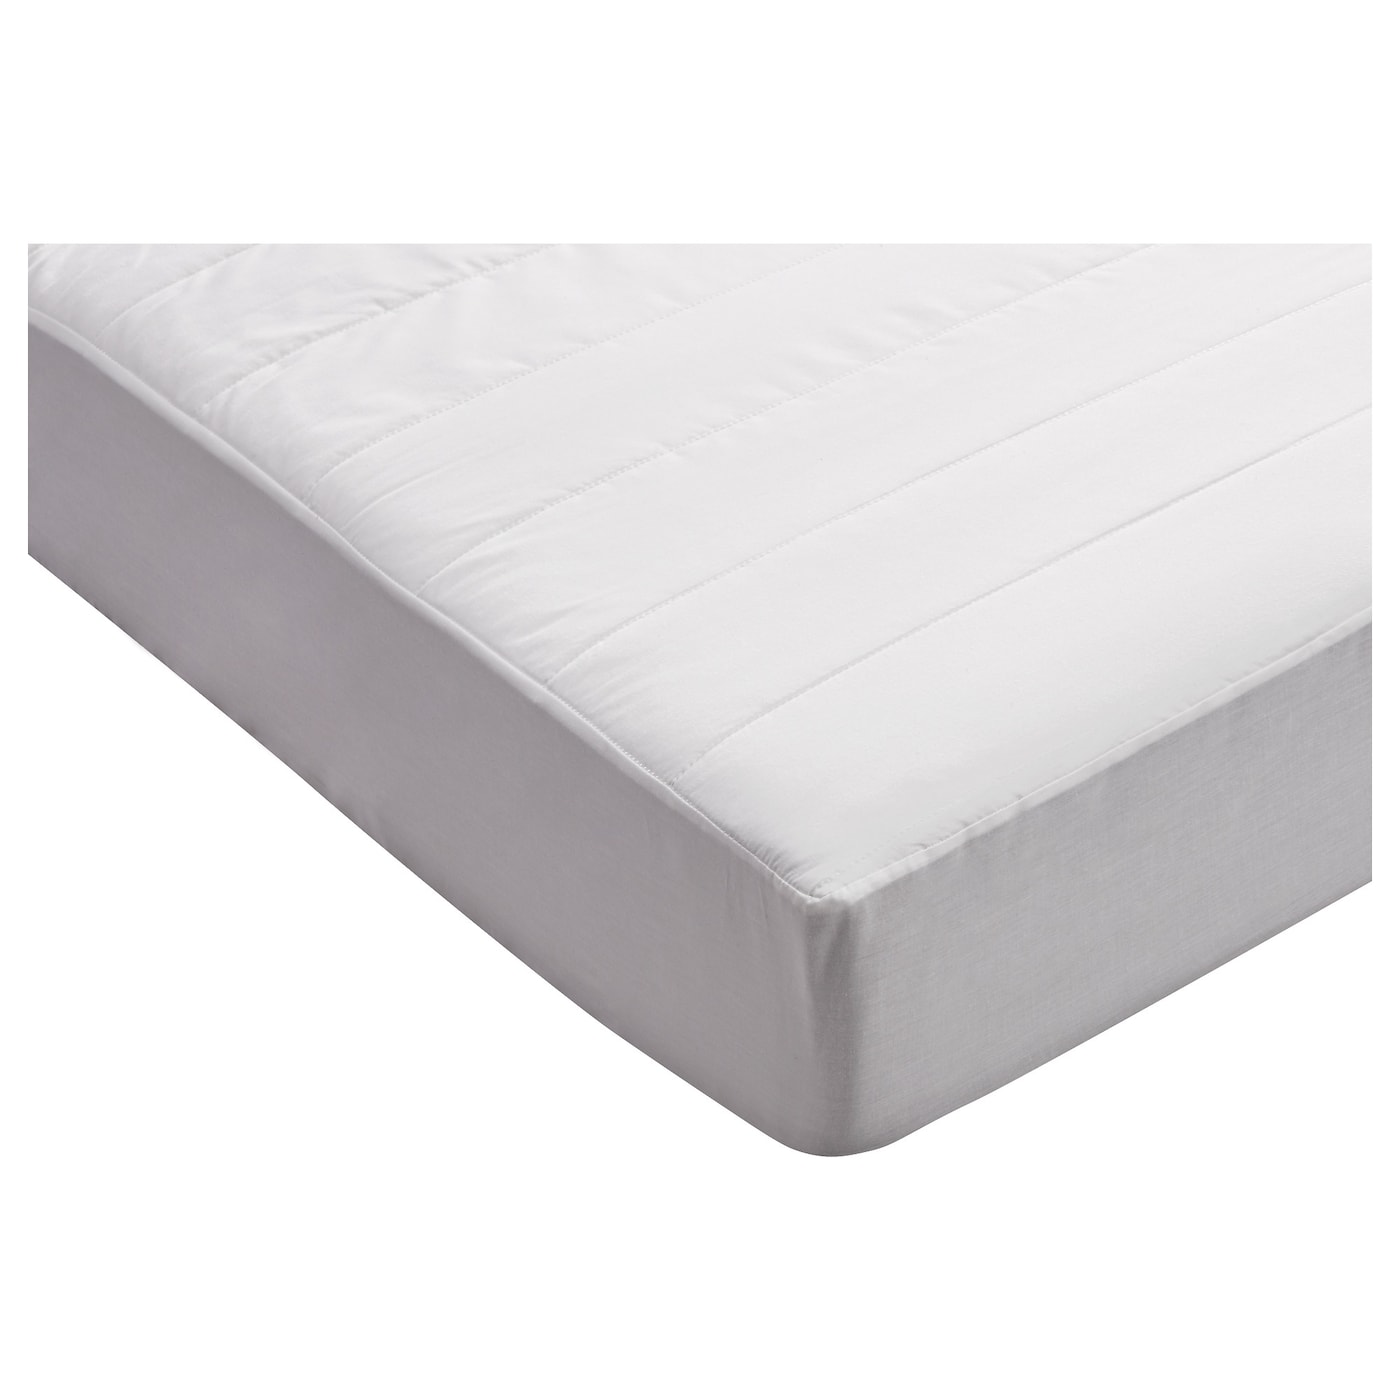 layer standard dark art a en fillings mattress toppers hamarvik sprung double support ikea mattresses and soft beige adds gb medium generous of comfort firm products